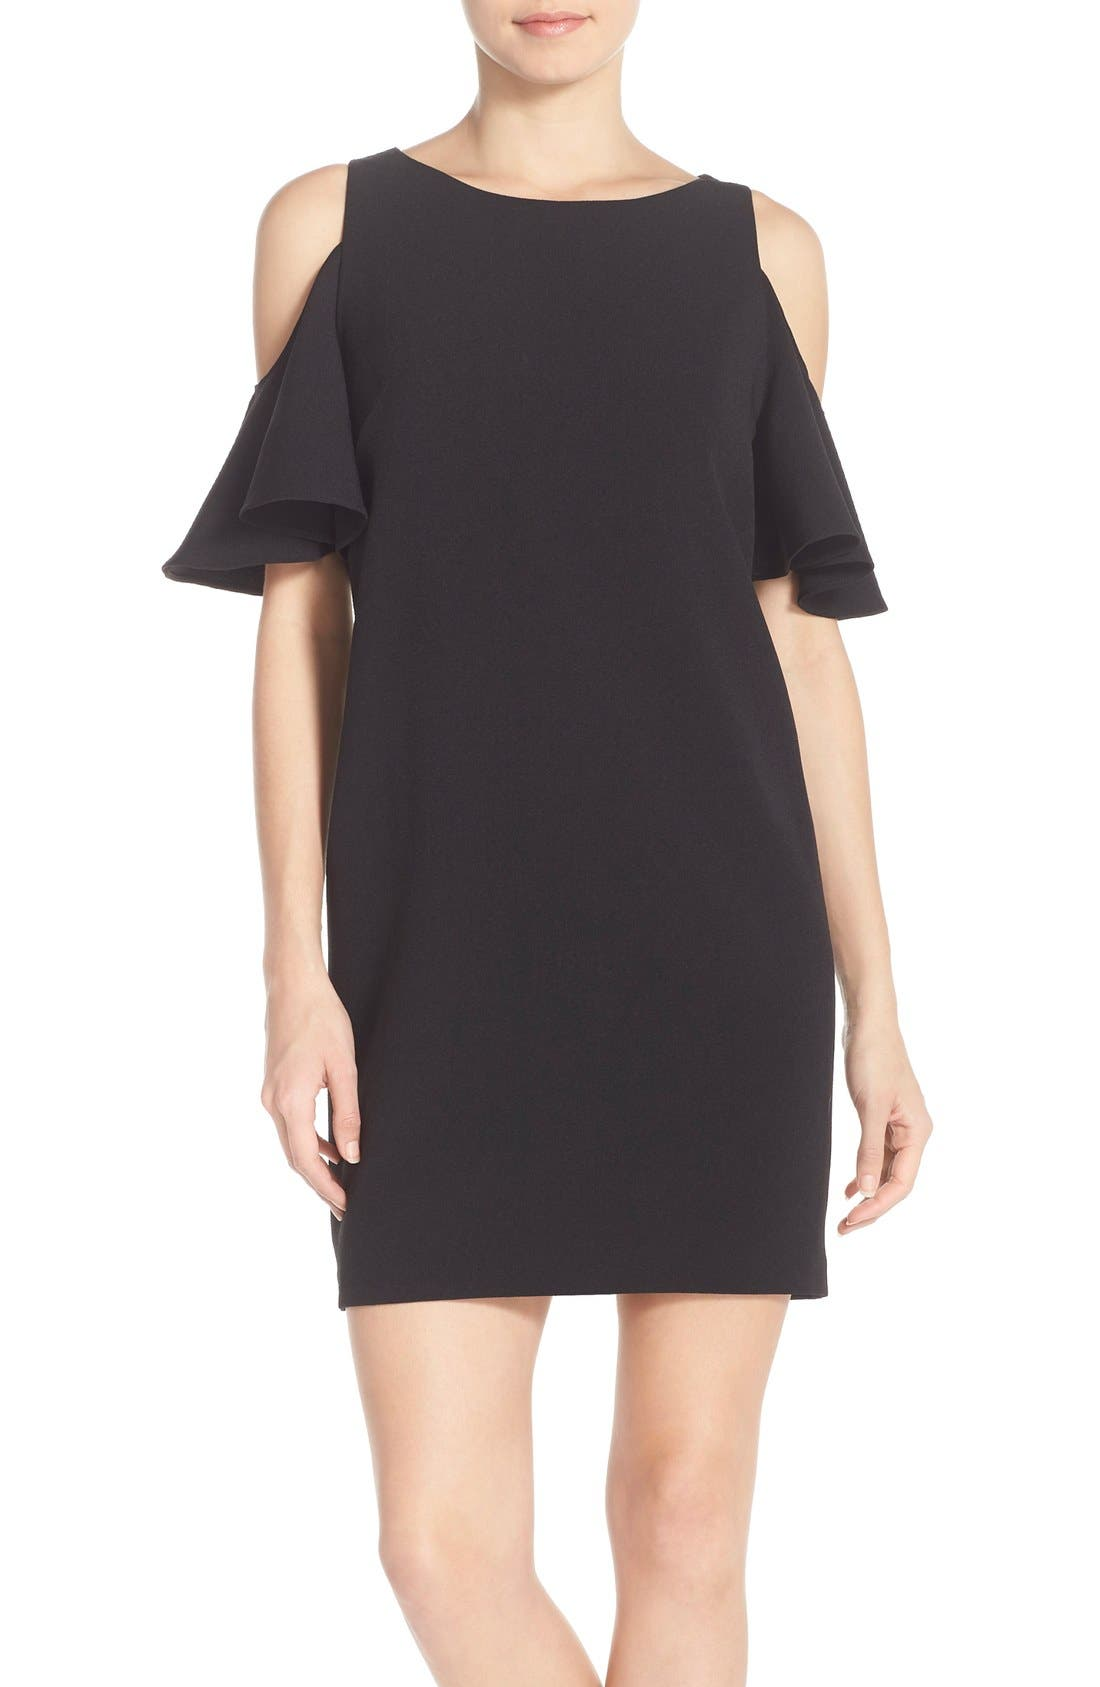 'Peek-A-Boo' Cold Shoulder Shift Dress,                             Main thumbnail 1, color,                             001